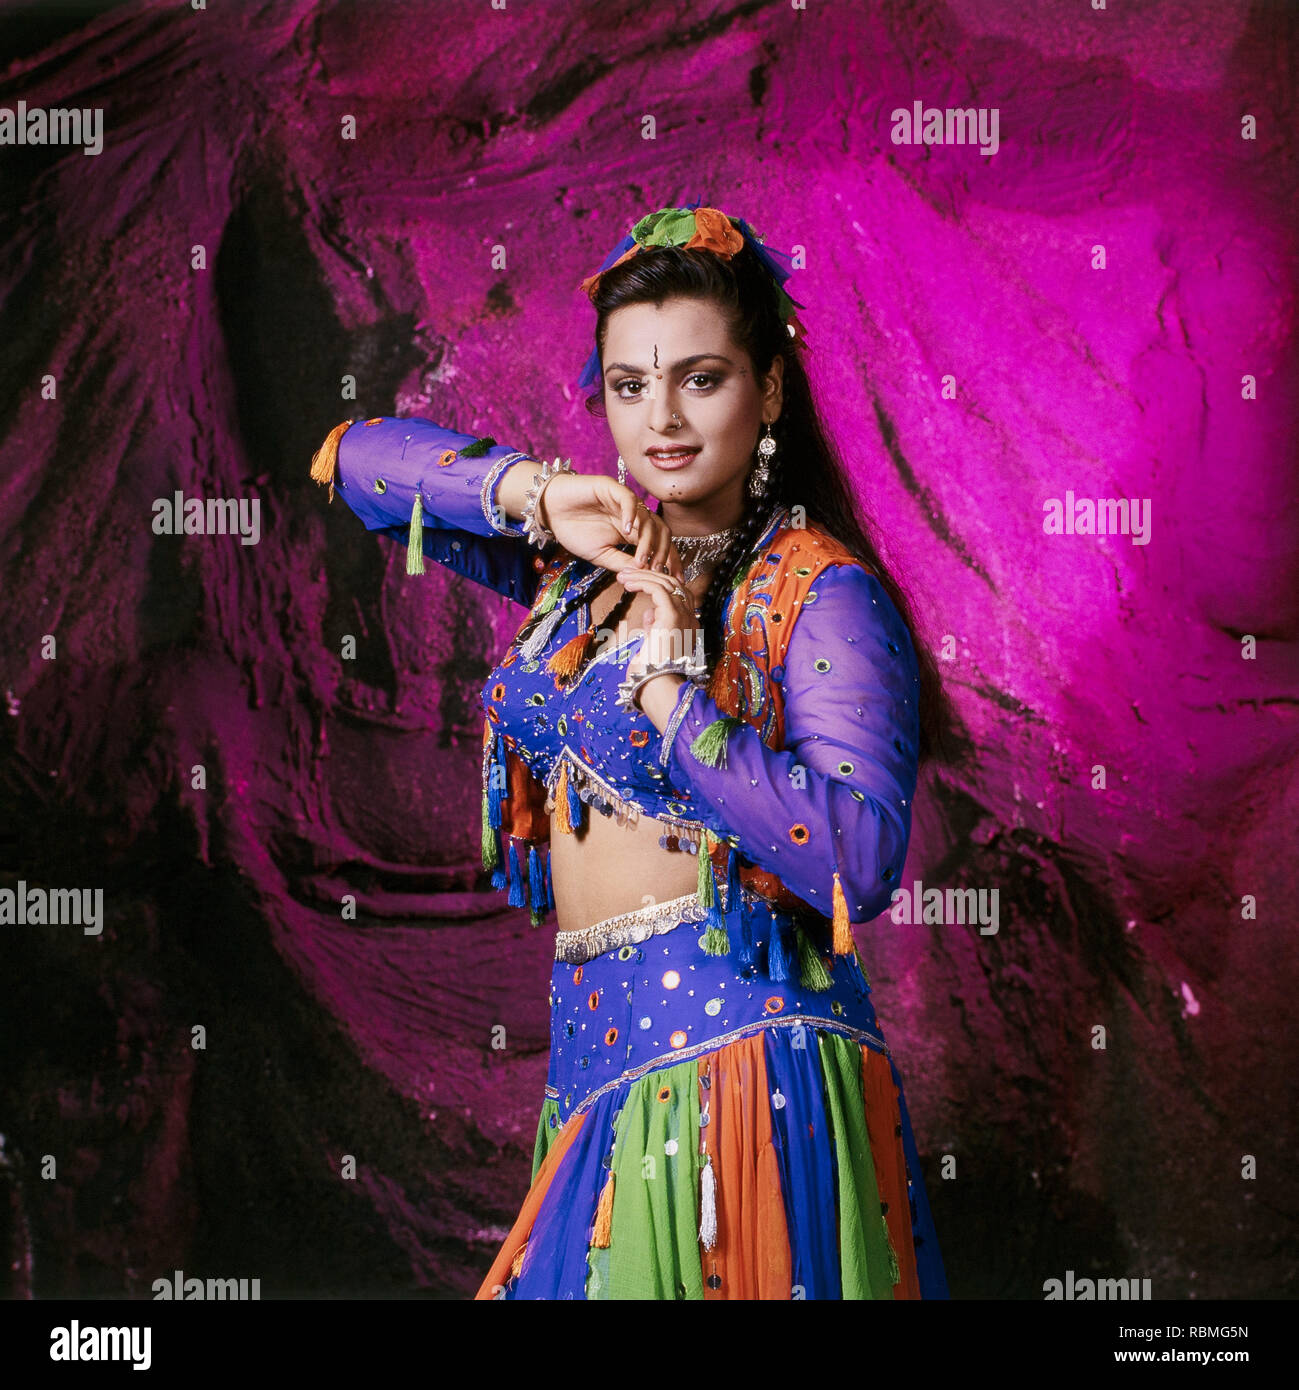 Shilpa Stock Photos & Shilpa Stock Images - Alamy